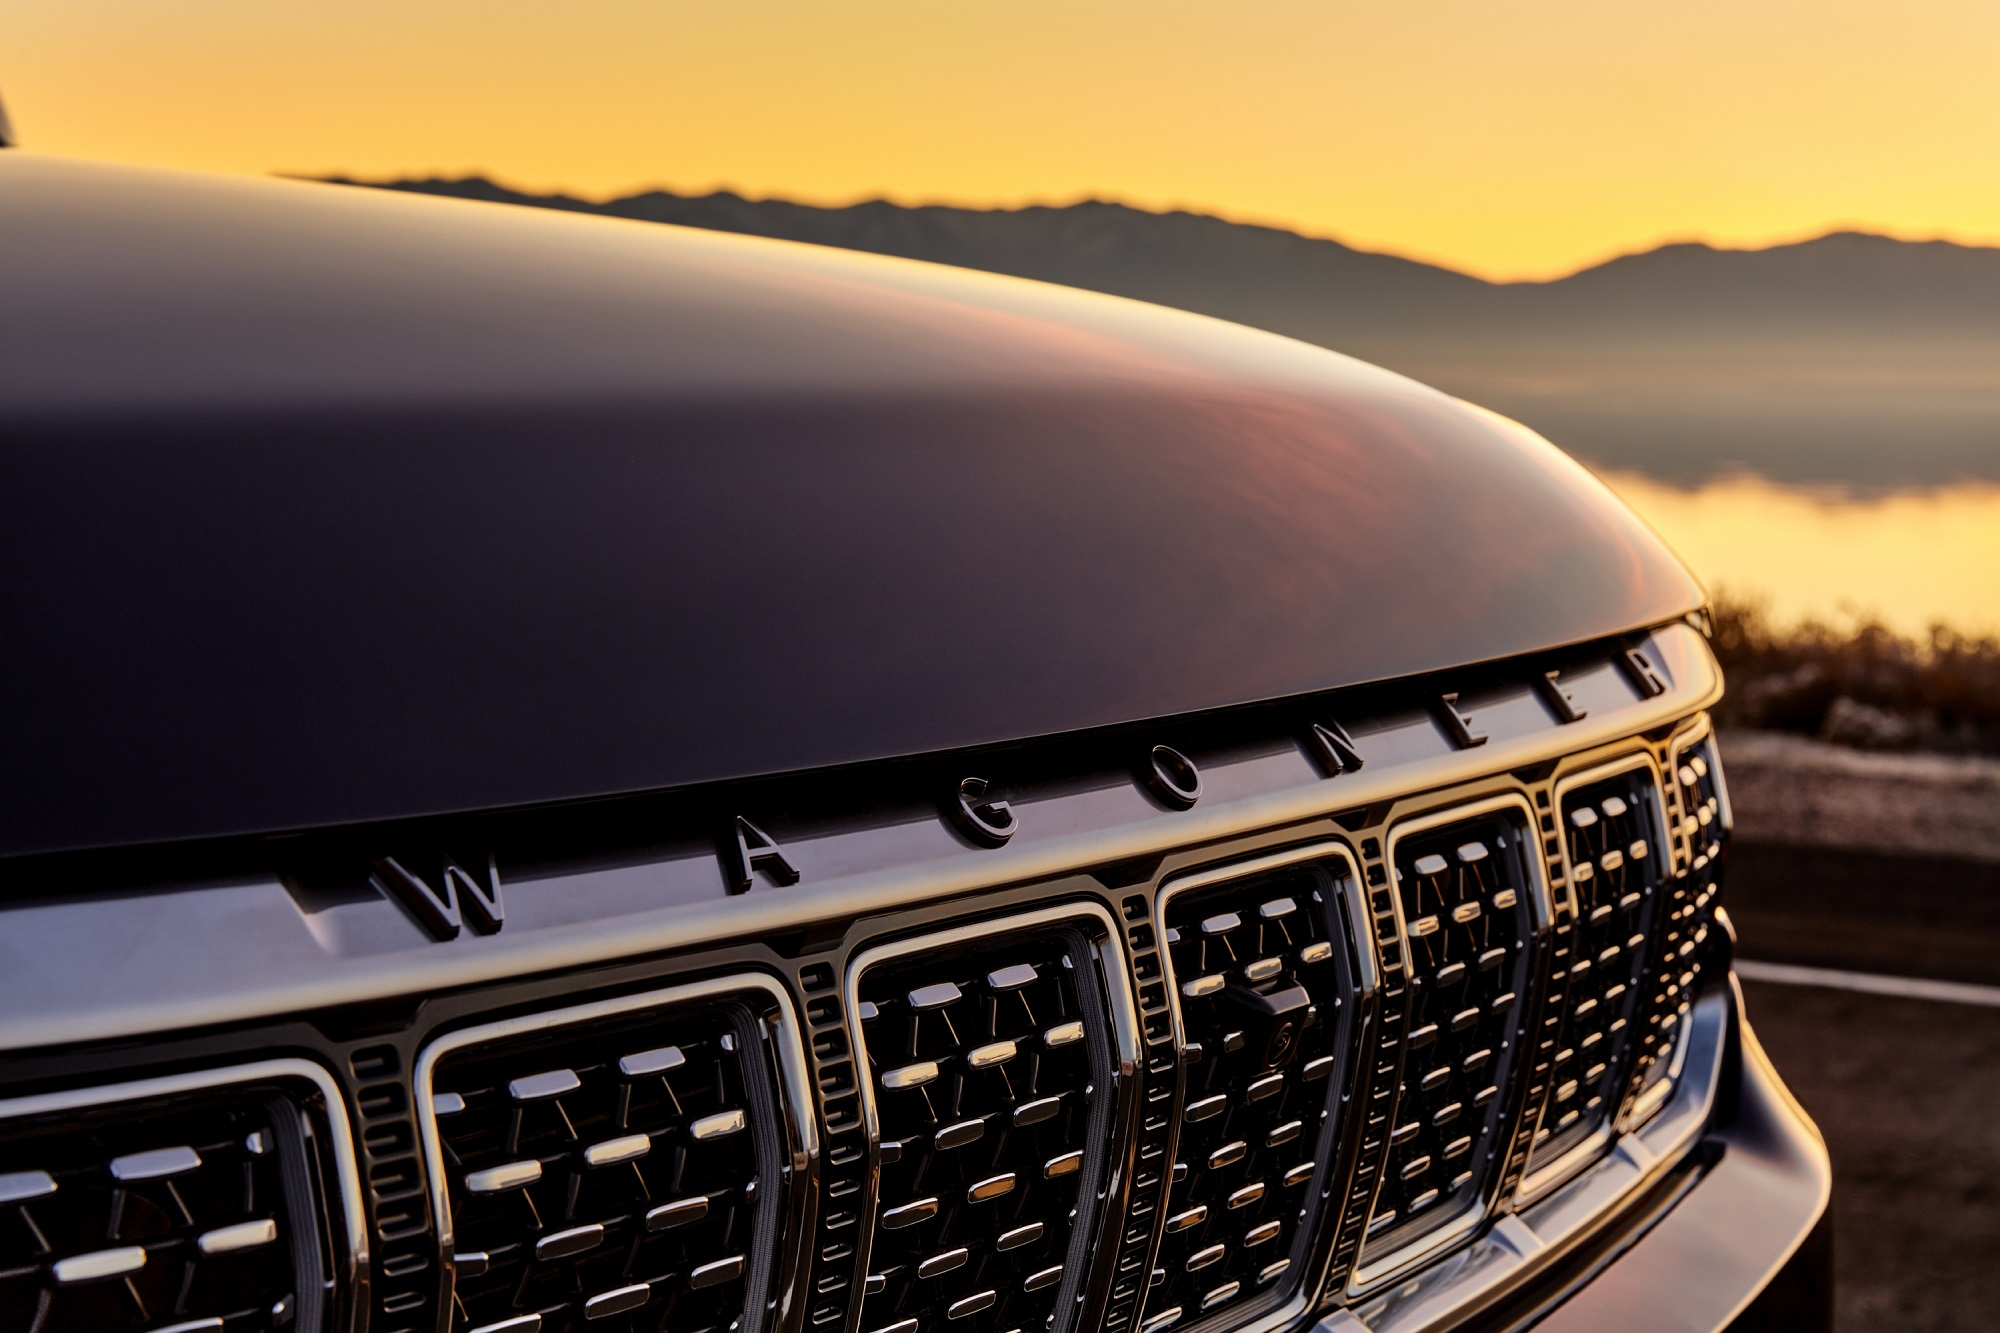 All-new 2022 Grand Wagoneer features the legendary seven-slot grille hinting at family ties and, on Grand Wagoneer models, features paint-over-chrome laser-etched grille rings, similar to a knurled finish seen on fine watches.